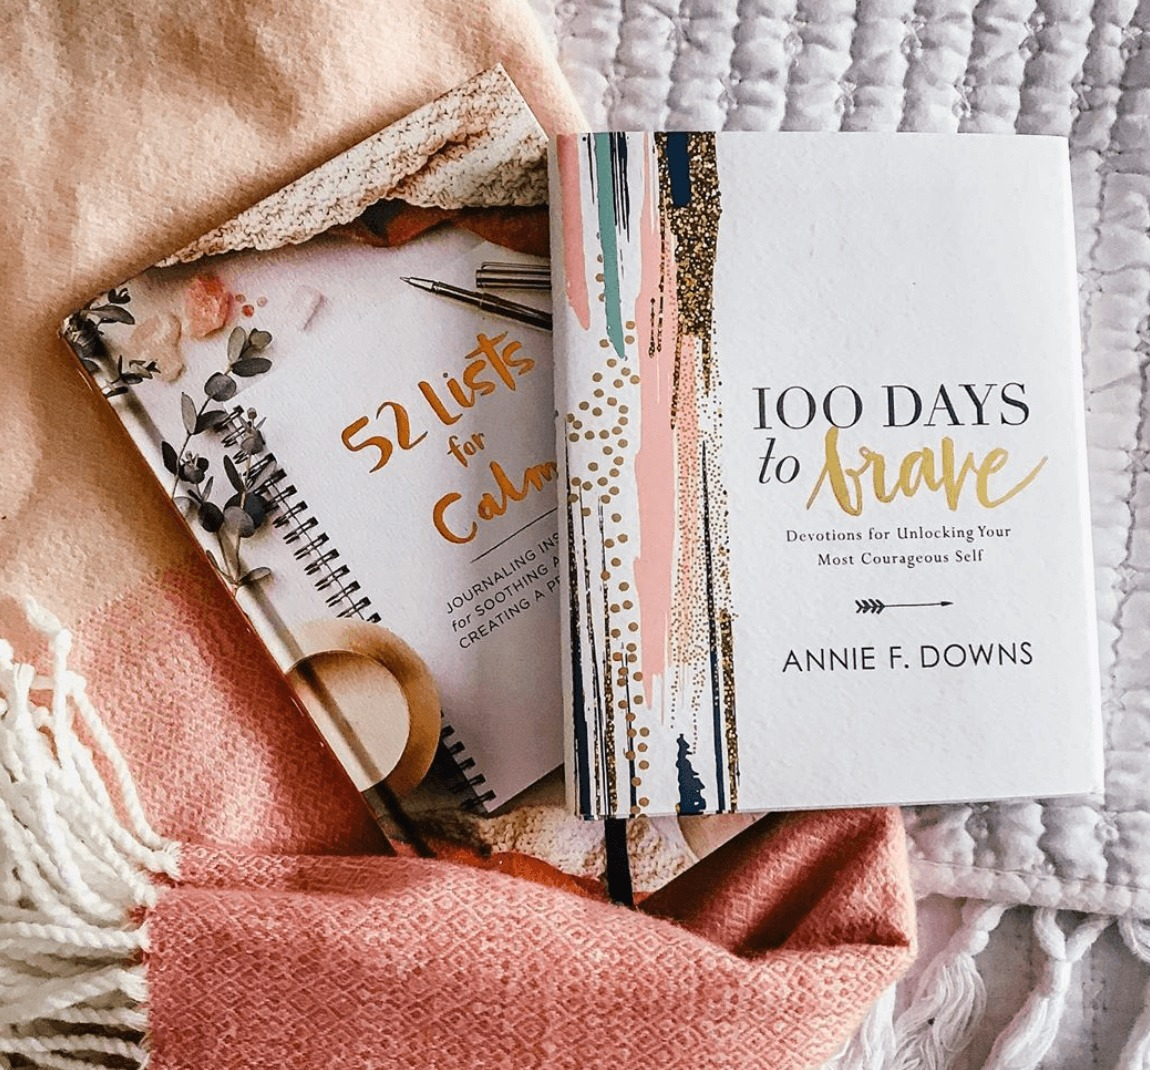 100 Days to Brave by Annie F. Downs.